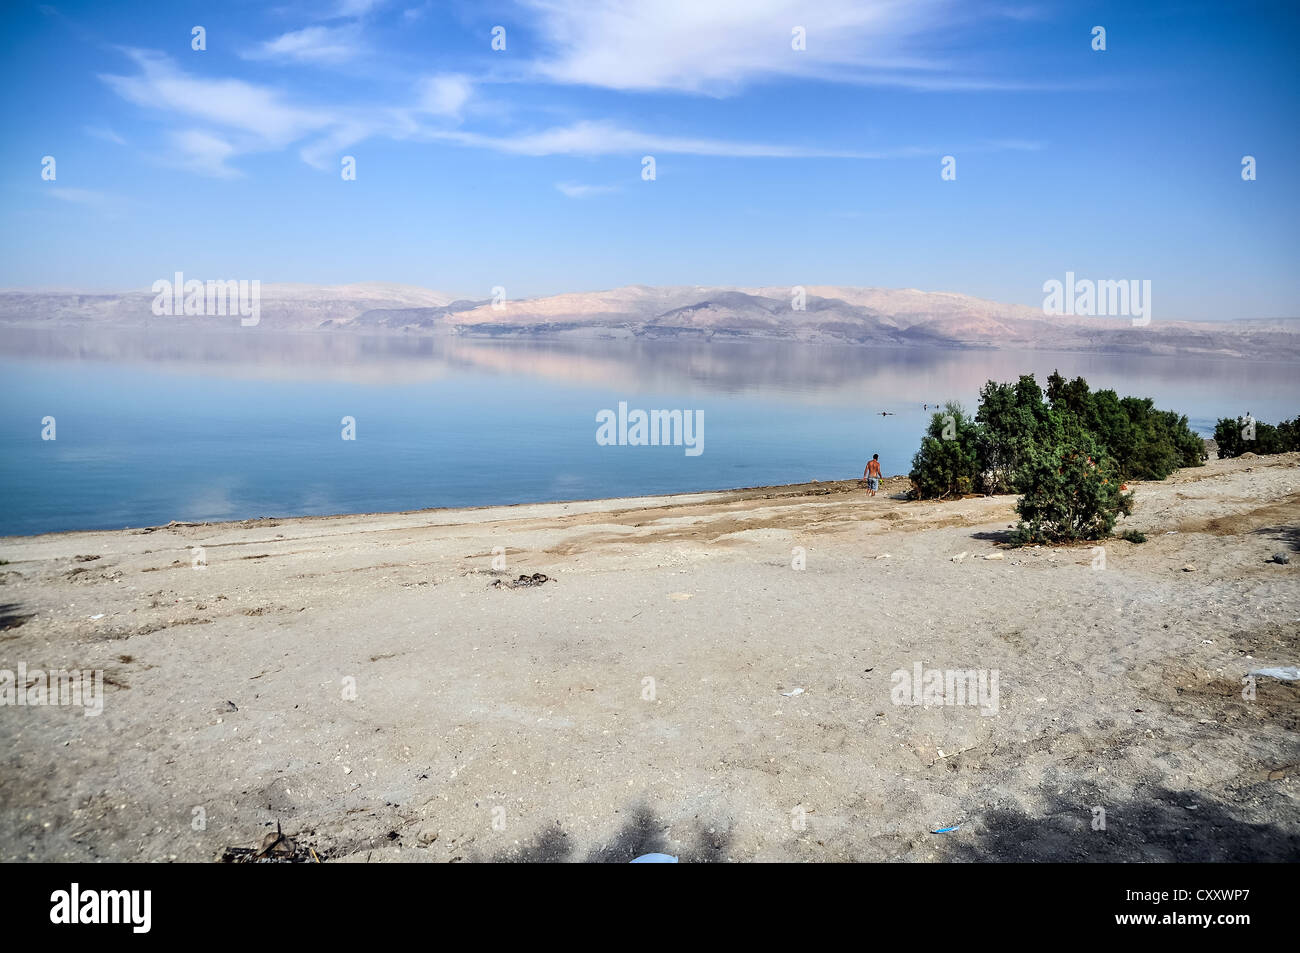 Landscape. Beautiful reflection in the Dead Sea in Israel. Stock Photo